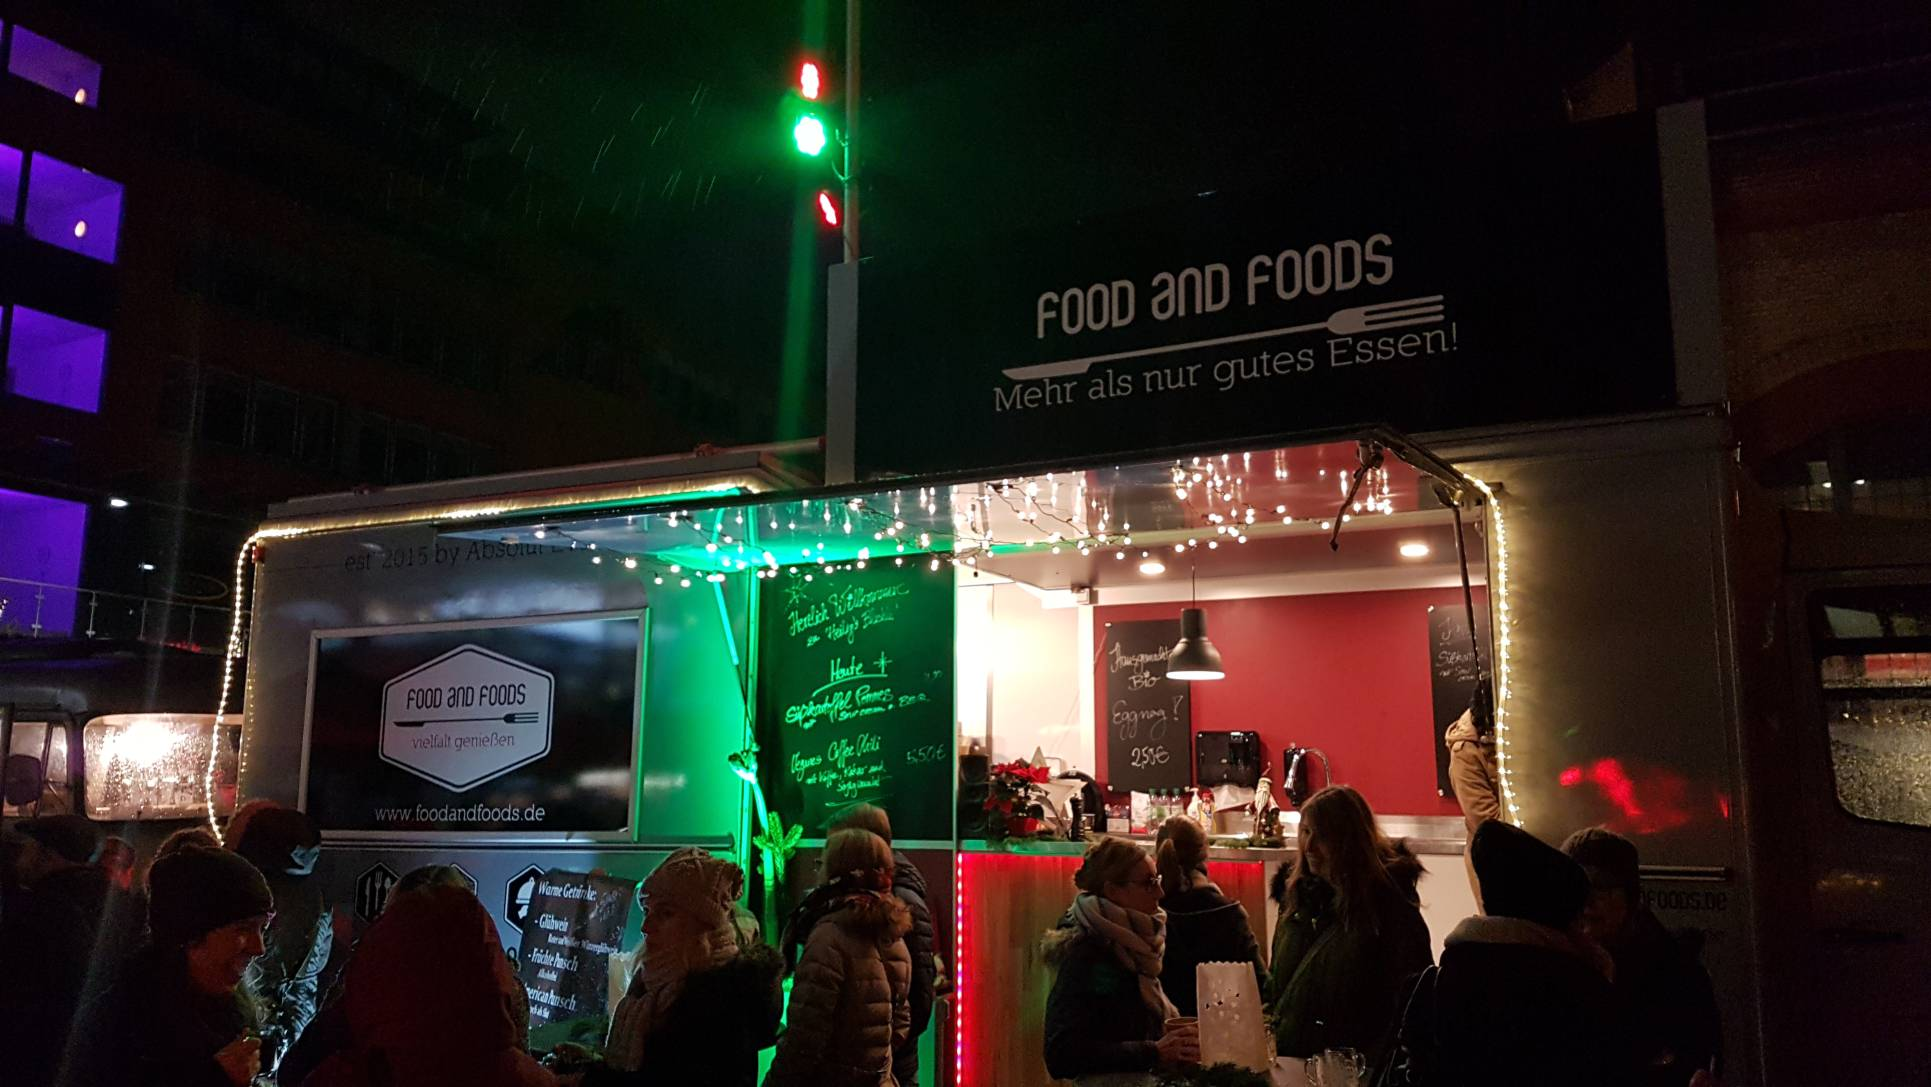 absolut_events_food_and_foods_catering_fahrzeug_food_truck_bar_verleih